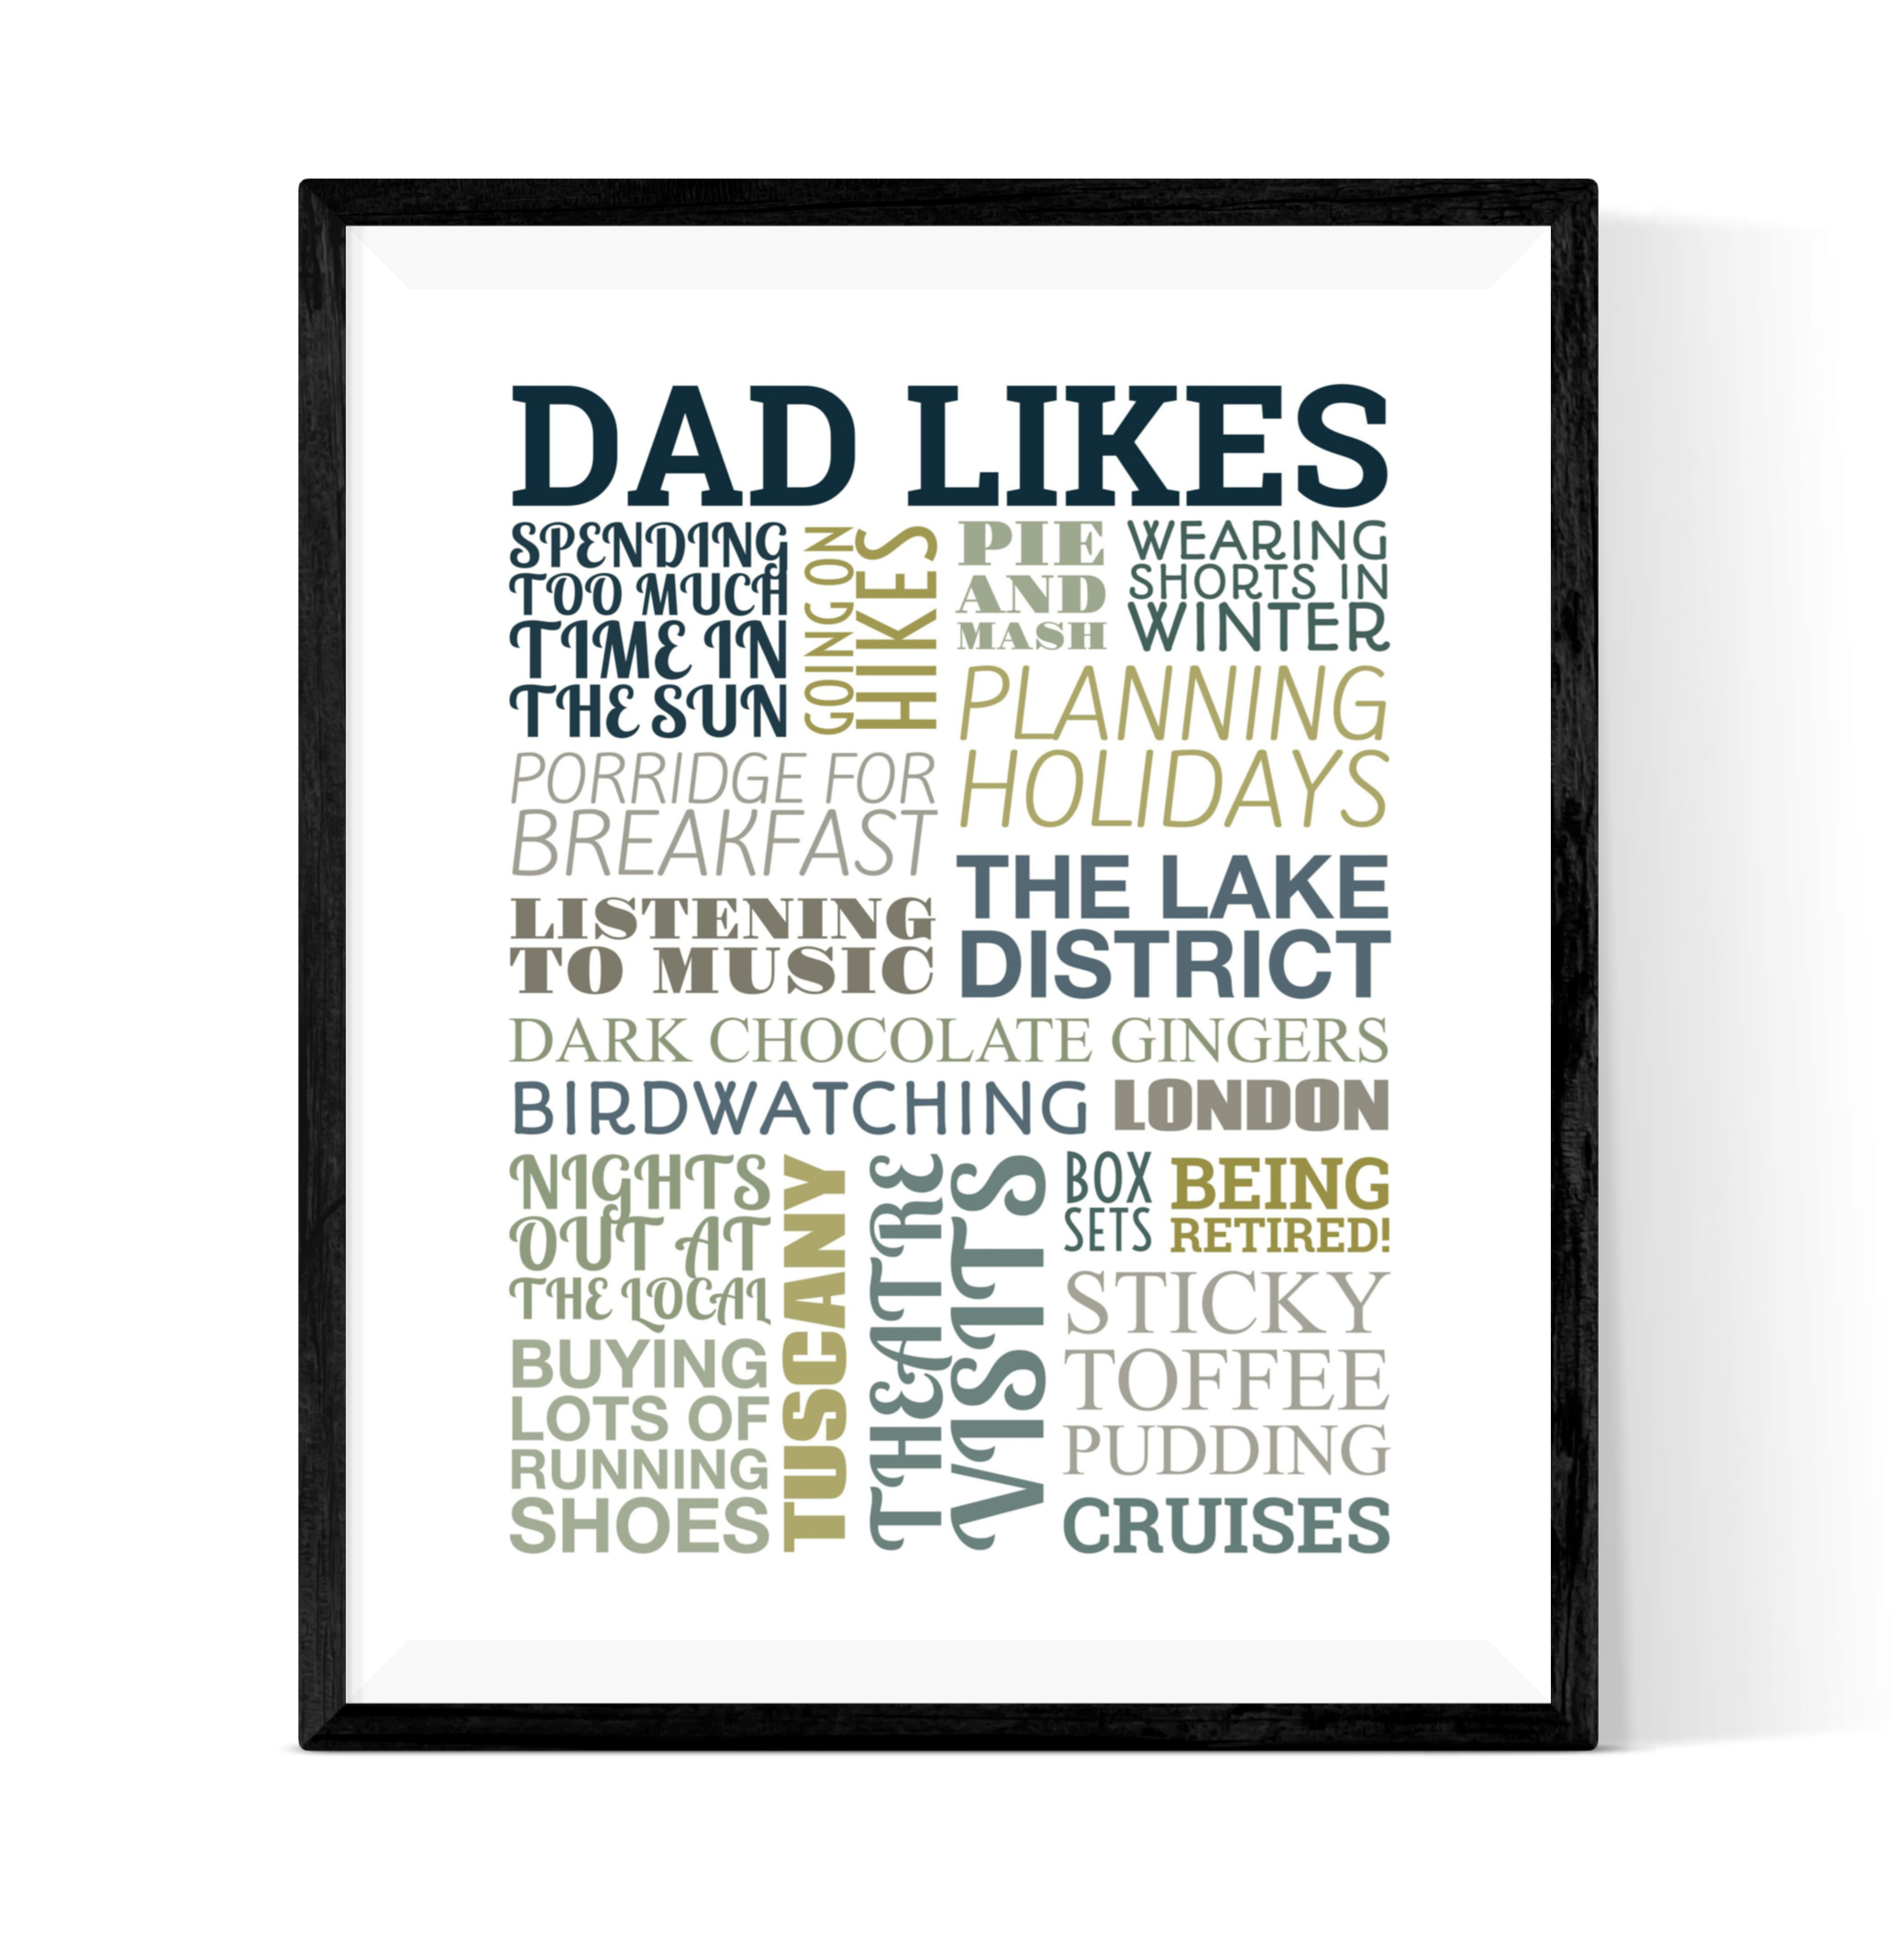 Typography Two - Enjoy collating lots of dad's interests and traits in this eye-catching design. Scroll through different layouts and choose from a wide range of colour schemes to create the perfect design.